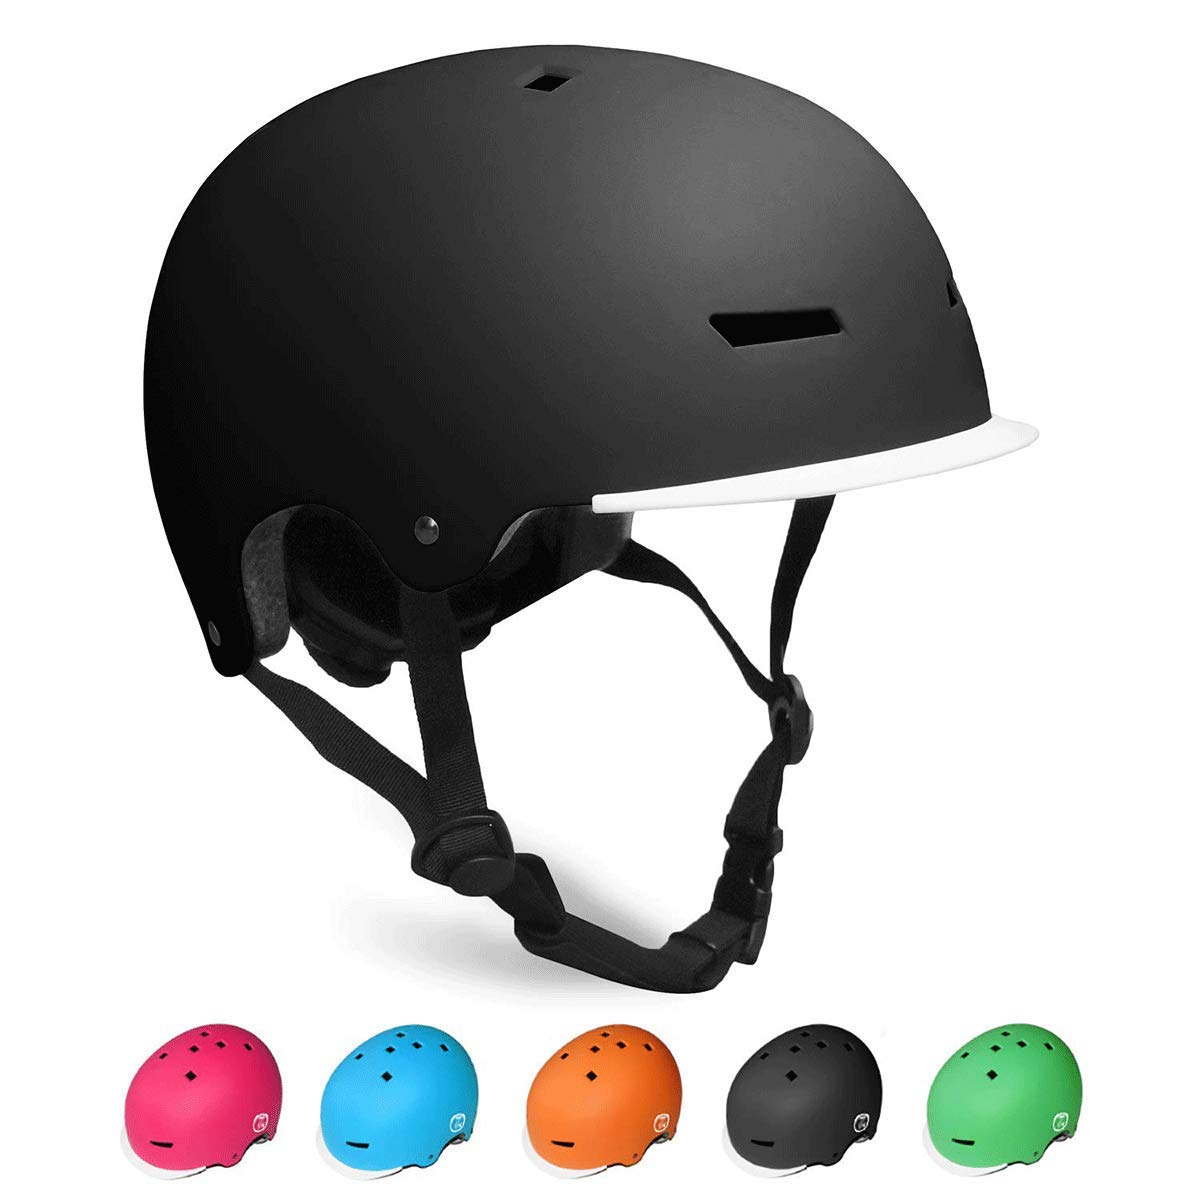 Adjustable and Multi-Sport 3 Sizes OUWOER Kids Bike Helmet from Toddler to Youth CPSC Certified